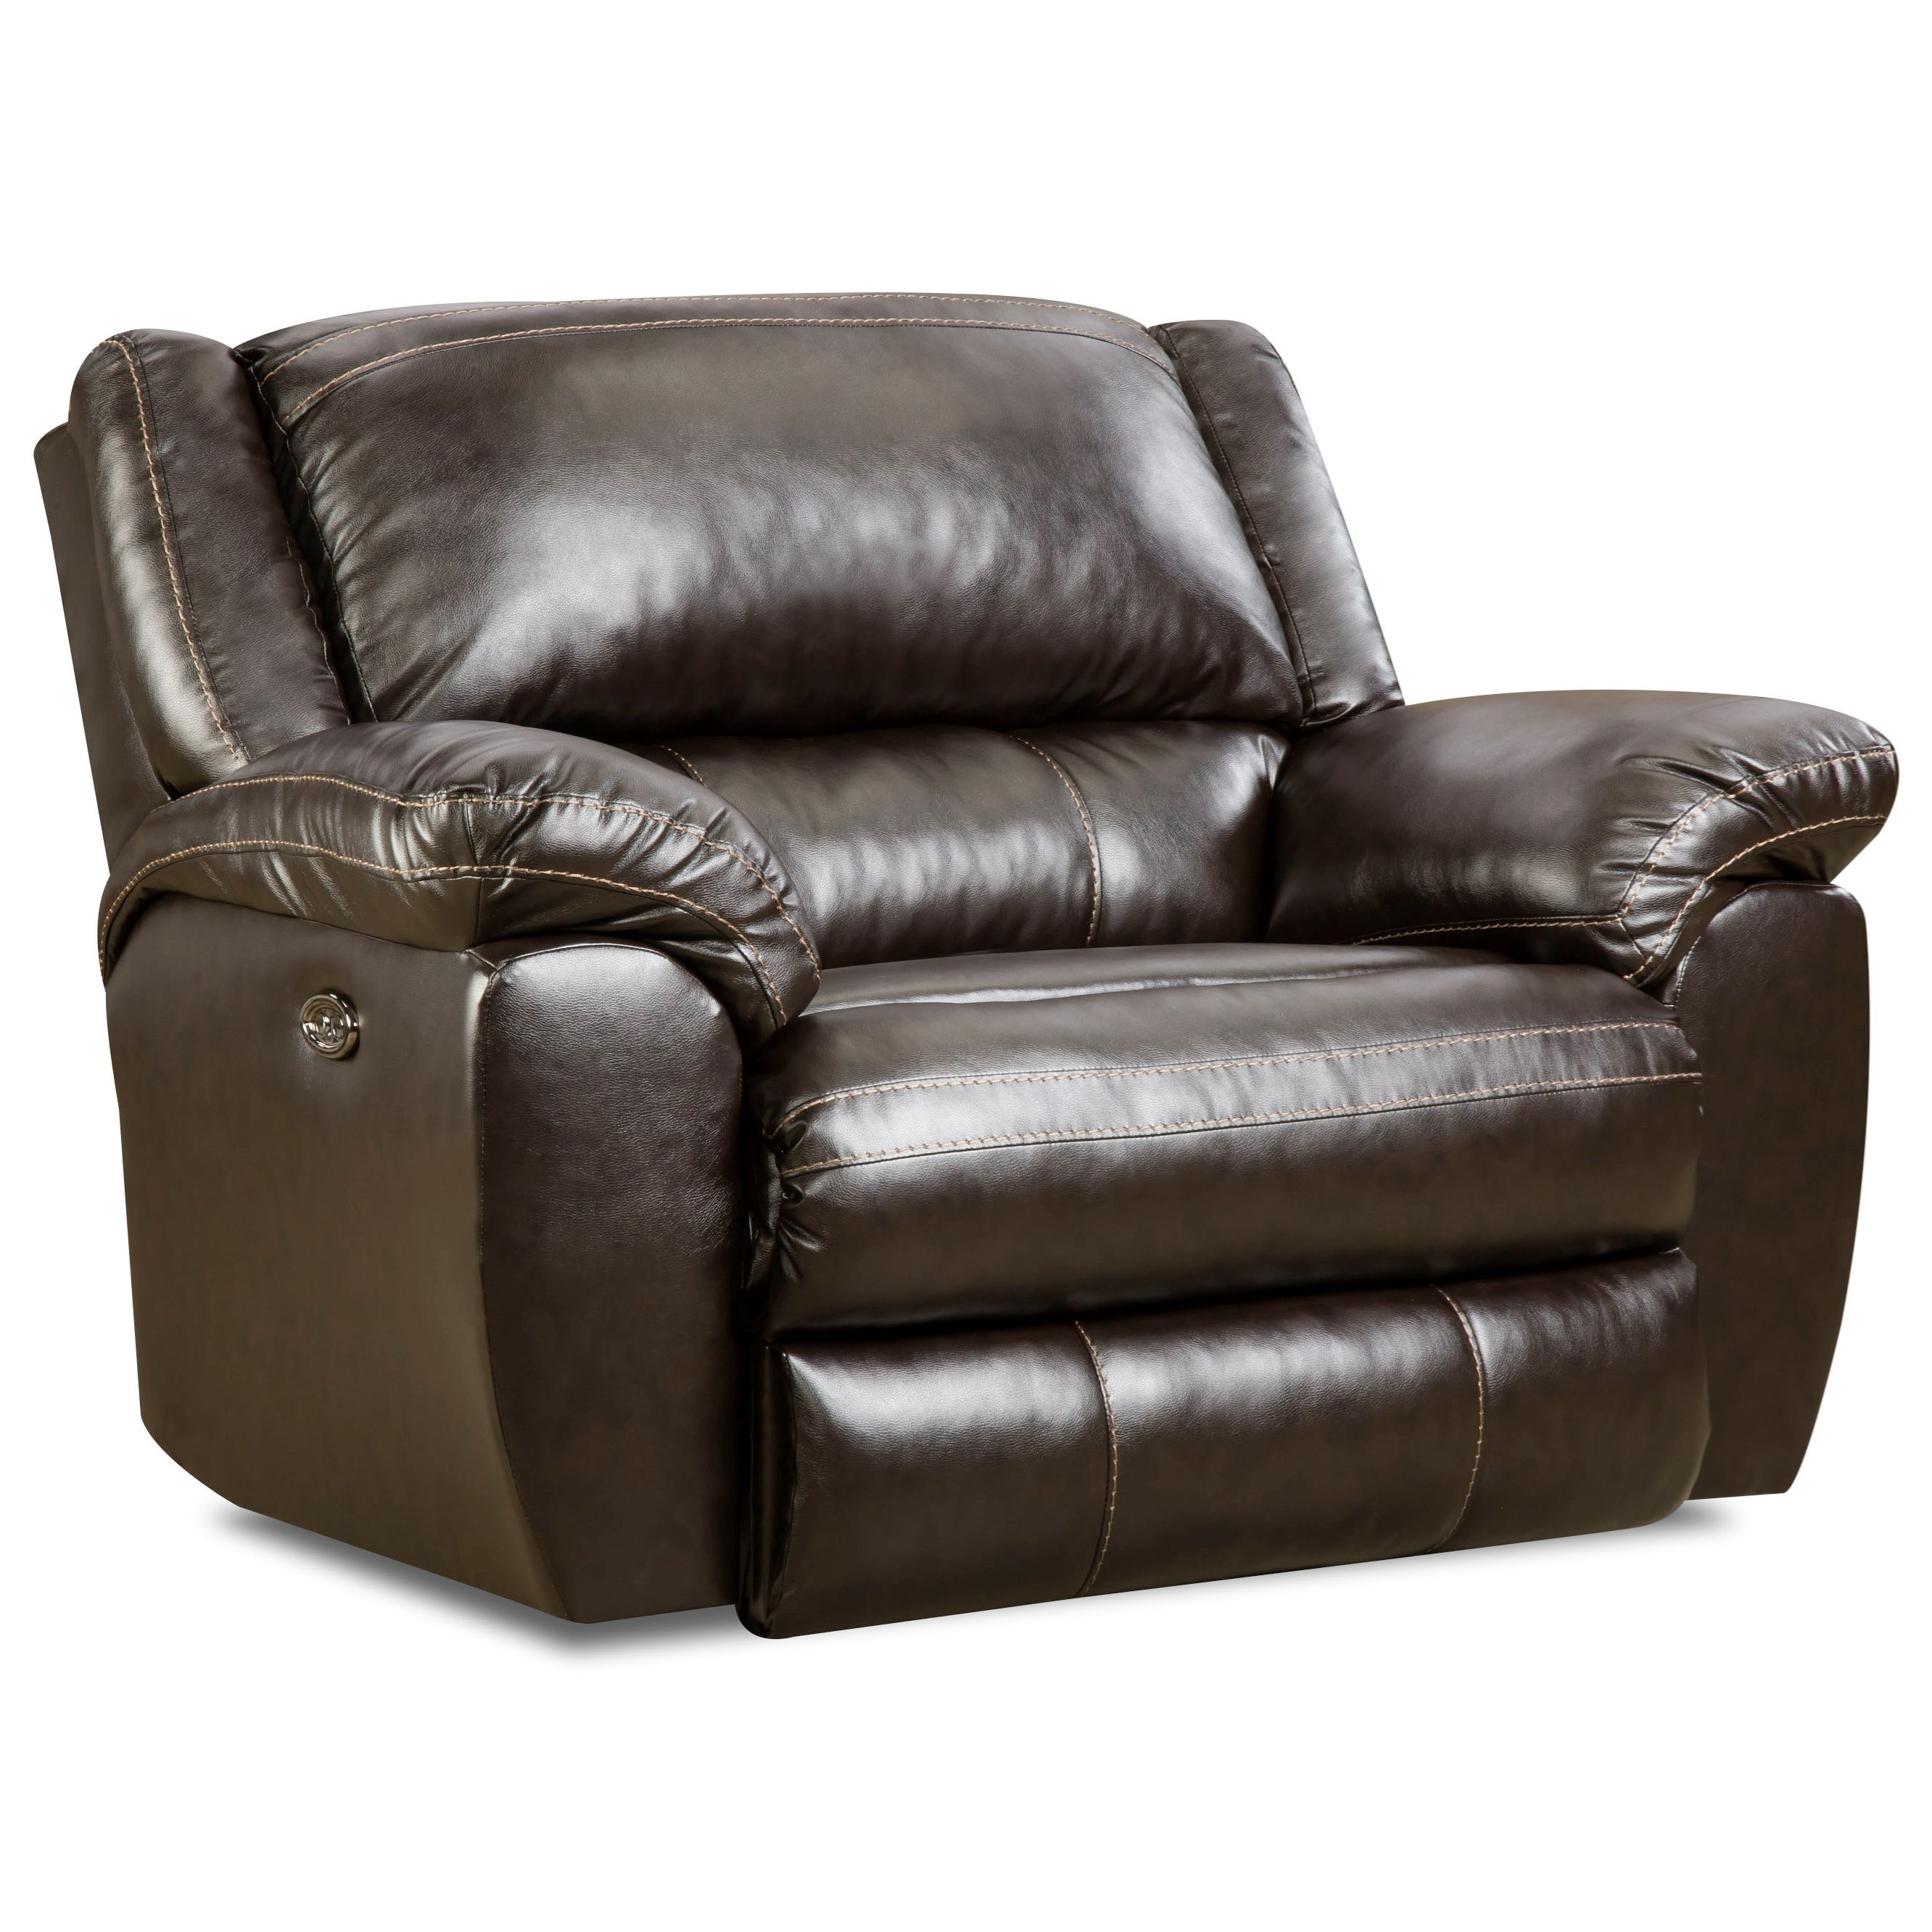 Simmons Upholstery 50433BR Power Cuddler Recliner - Item Number: 50433BRPCuddlerRecliner-BingoBrown